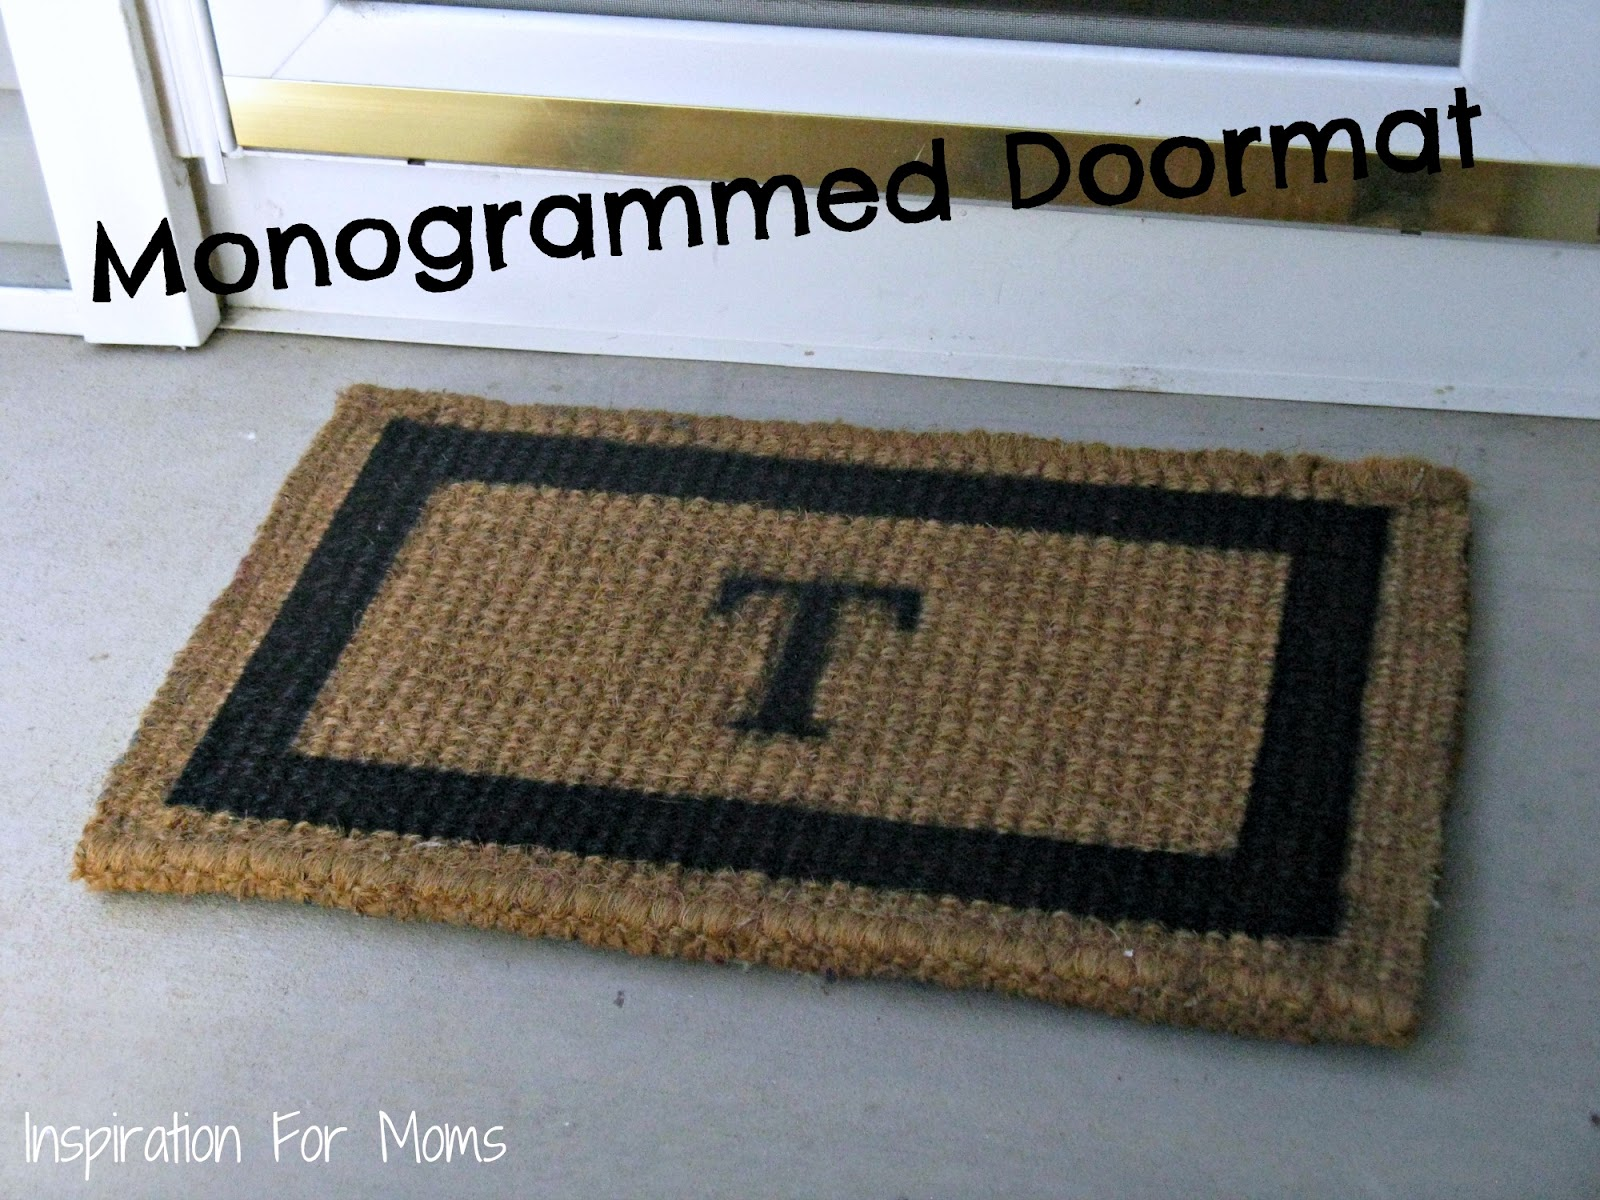 welcome to mats front back mat outdoor personalized door initial unique monogrammed